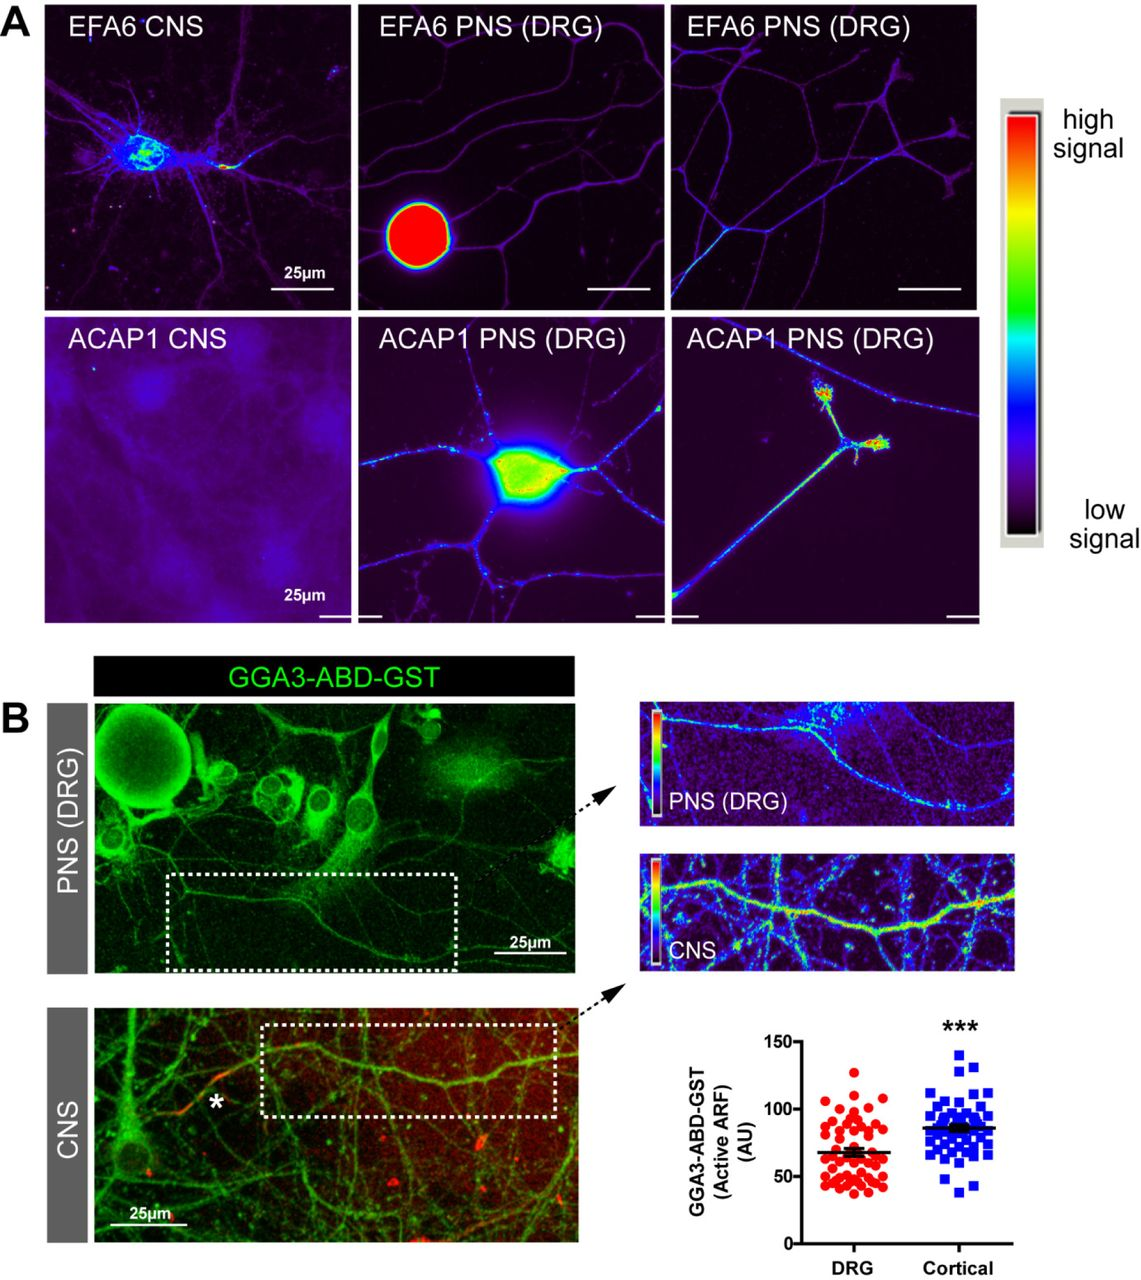 ARF6 is regulated differently in CNS vs . PNS neurons. (A) Cortical neurons and adult DRG neurons immunolabelled for EFA6 (upper panels) or ACAP1 (lower panels). Both neuronal types were labelled and imaged identically to allow comparison of fluoresent signal. Images represent two independent immunolabelling experiments. (B) Axons of DRG and cortical neurons (+DIV10) labelled with <t>GGA3-ABD-GST</t> to detect active <t>ARF.</t> Graph shows quantification of ARF activation in the two axon types. n=58(DRG) and 60(cortical). ***p